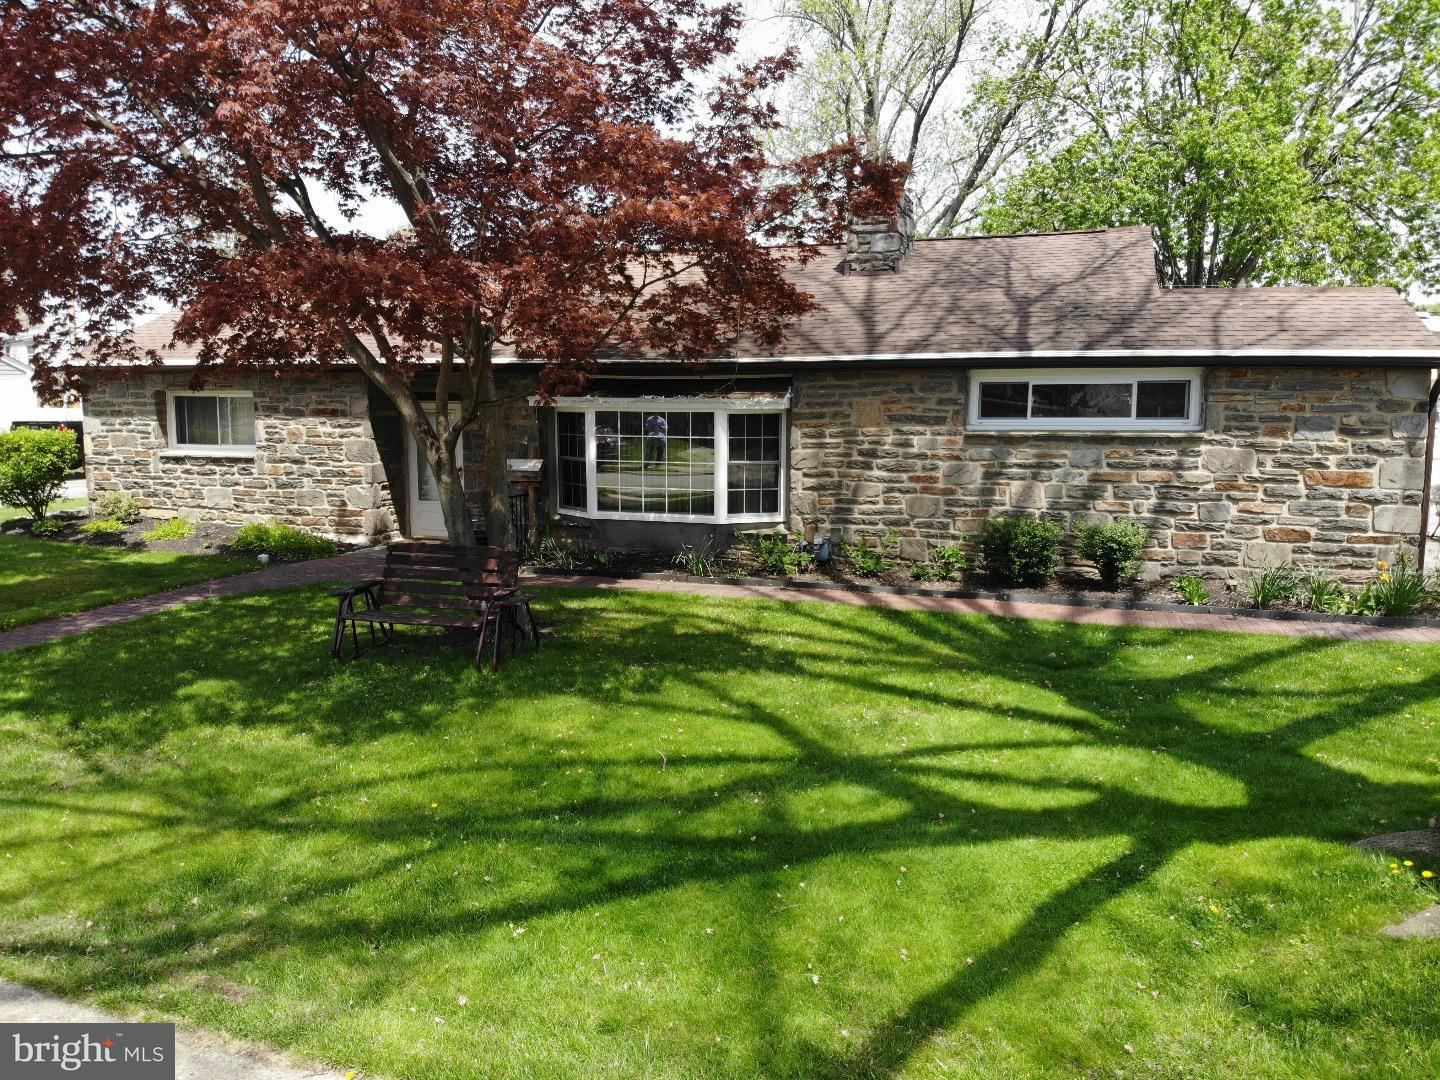 407 MICHELL ST, RIDLEY PARK - Listed at $279,900, RIDLEY PARK